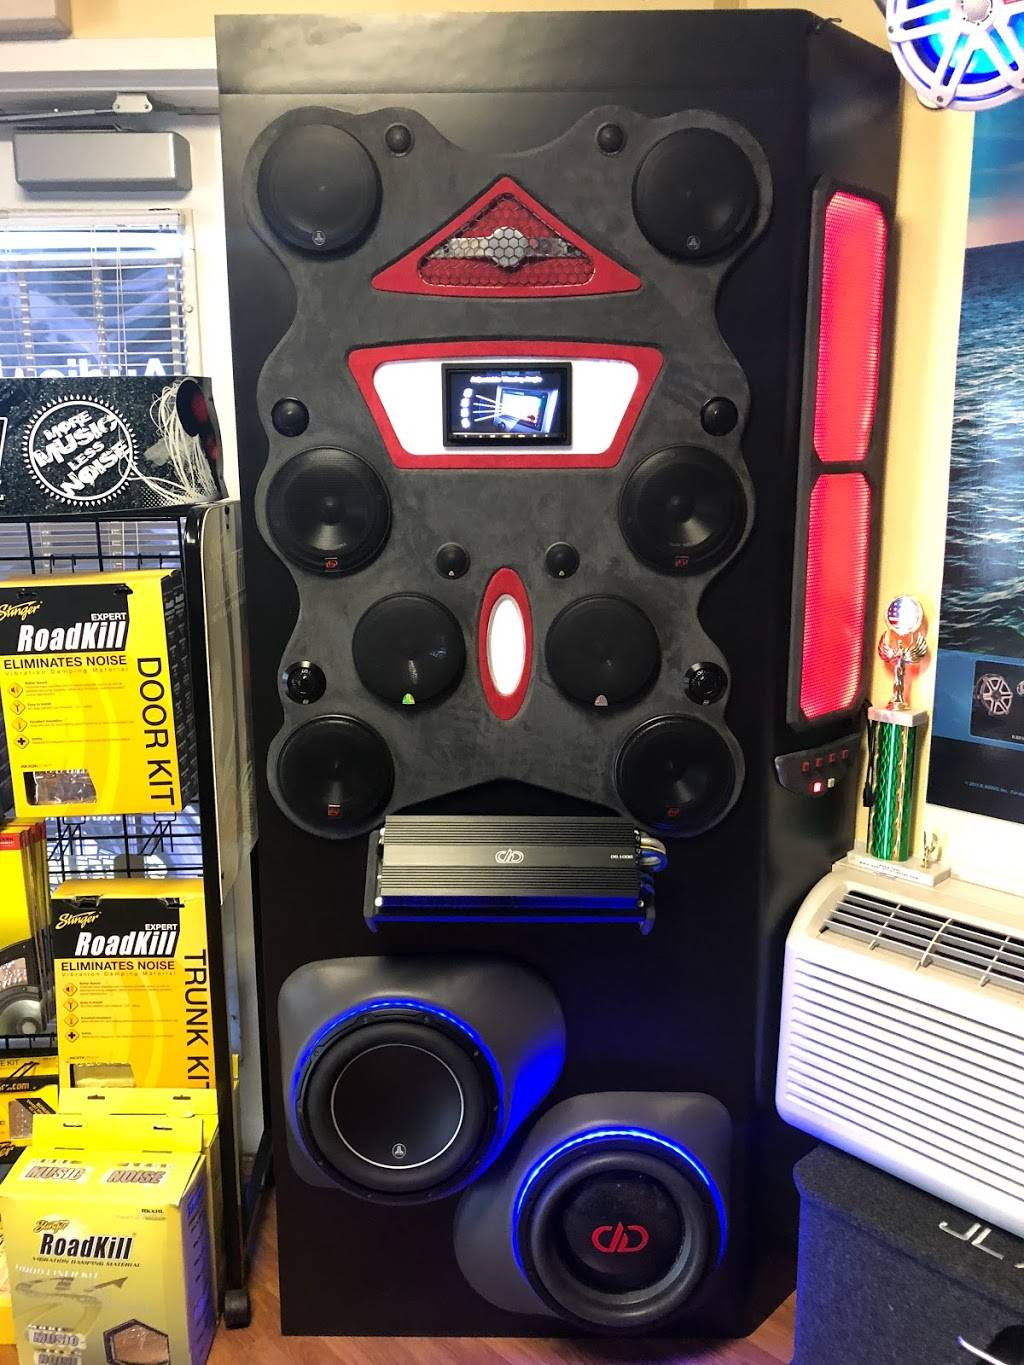 AUDIO PLUS - electronics store  | Photo 9 of 10 | Address: Behind Racetrack, 10050 Gibsonton Dr, Riverview, FL 33578, USA | Phone: (813) 671-8481